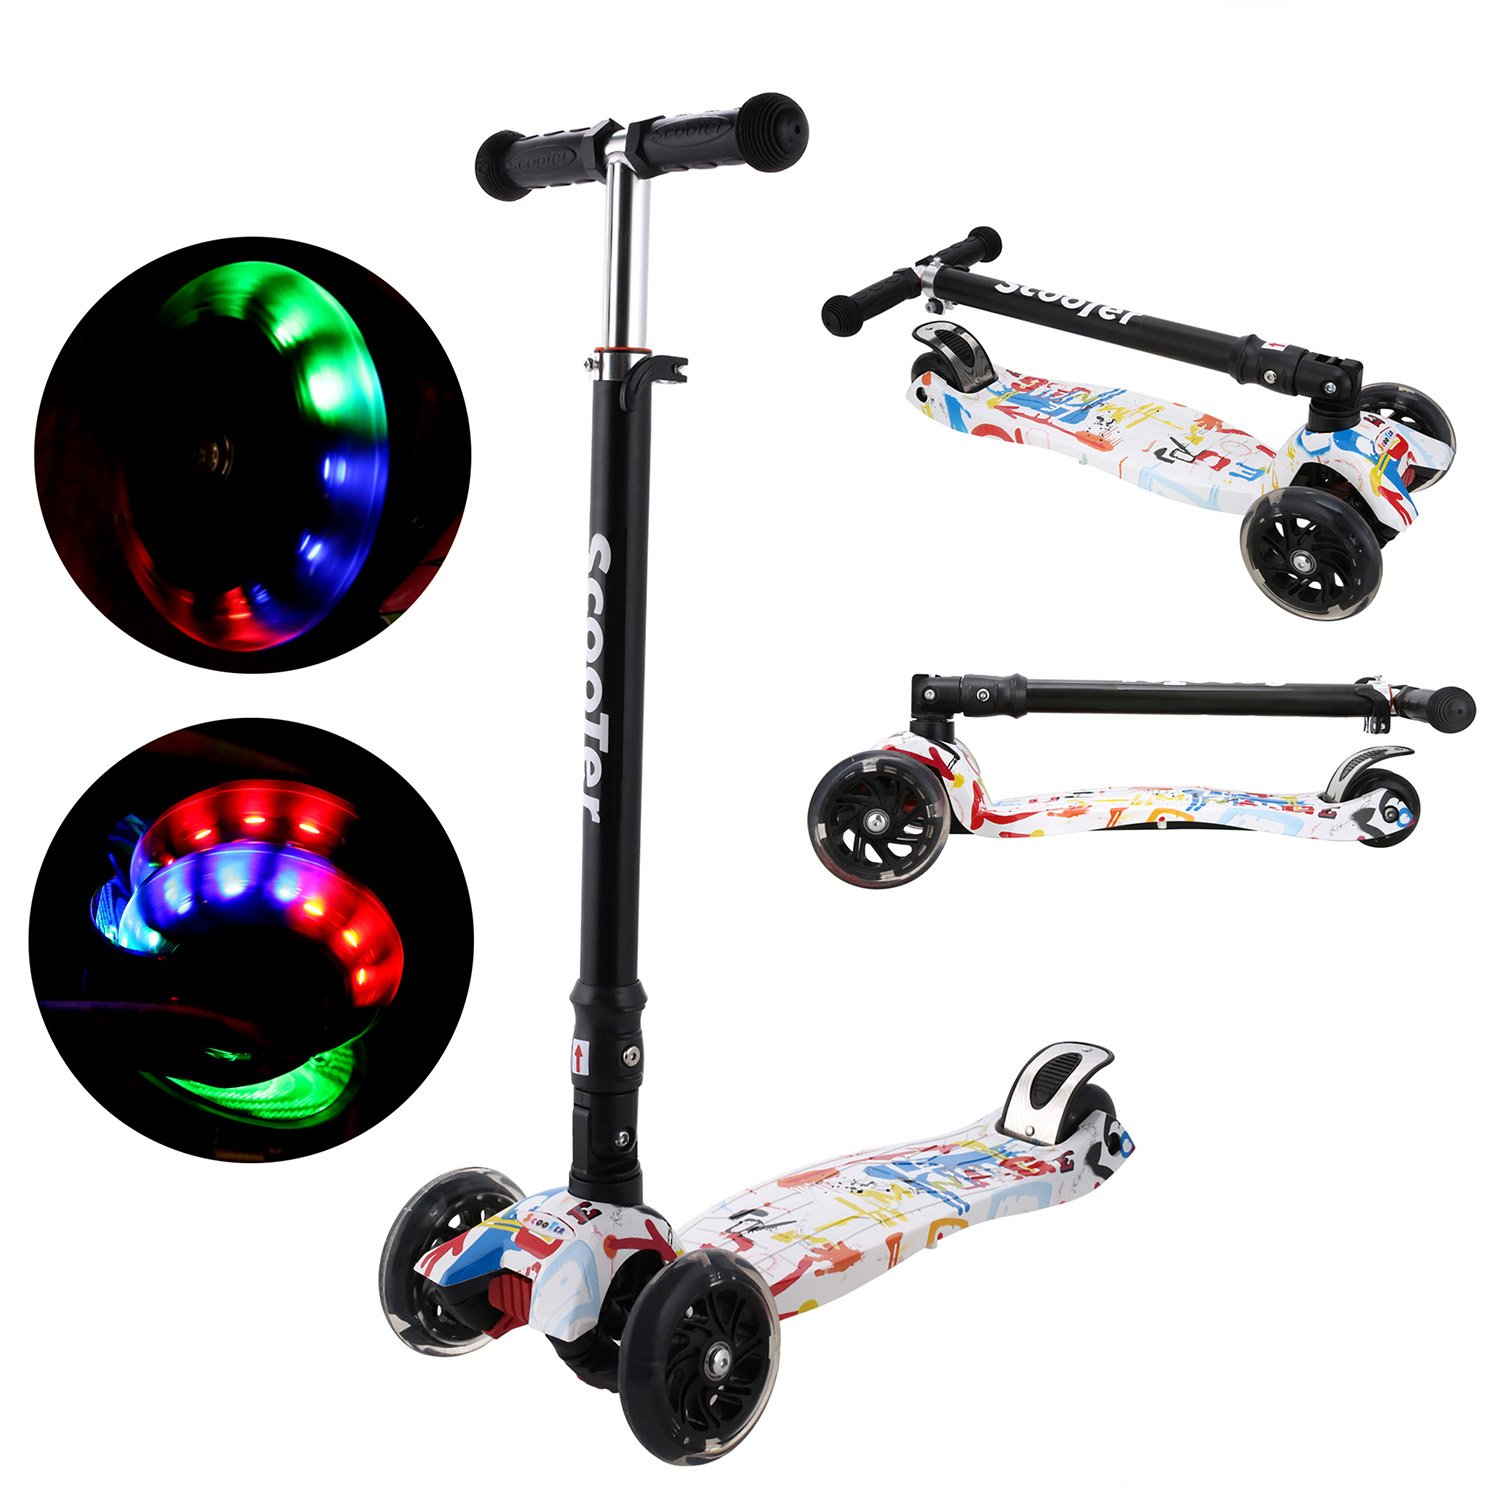 Ancheer New Kick Scooter For Kids 3 Wheel Scooter 4 Adjustable Height Kids Scooter LED Light Flashing PU Wheels Christmas Gift For Child Girl Boy 2018 MG1